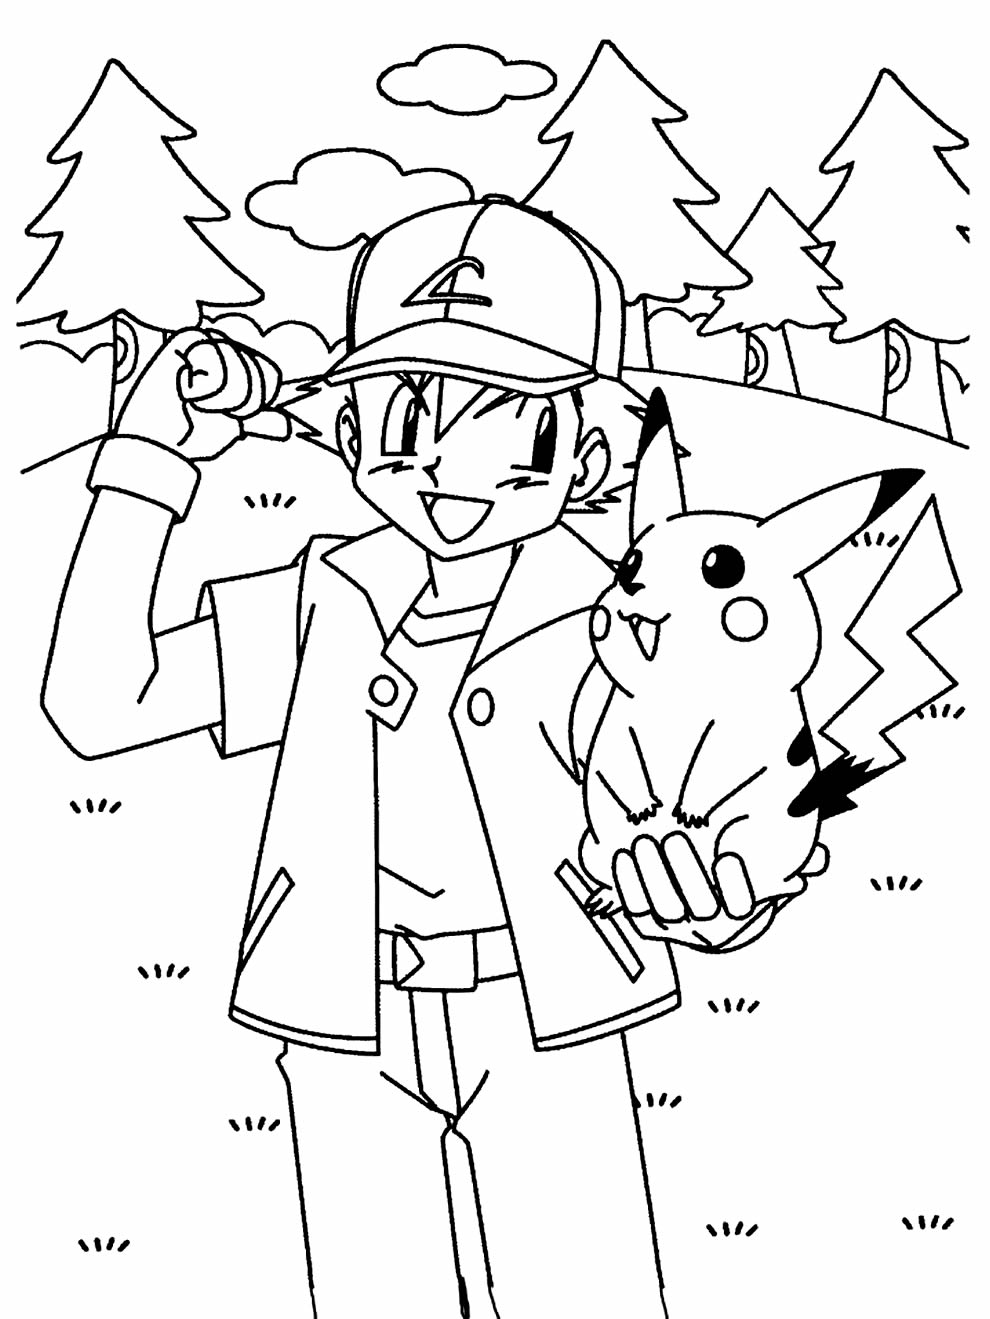 Pokemon drawing to color